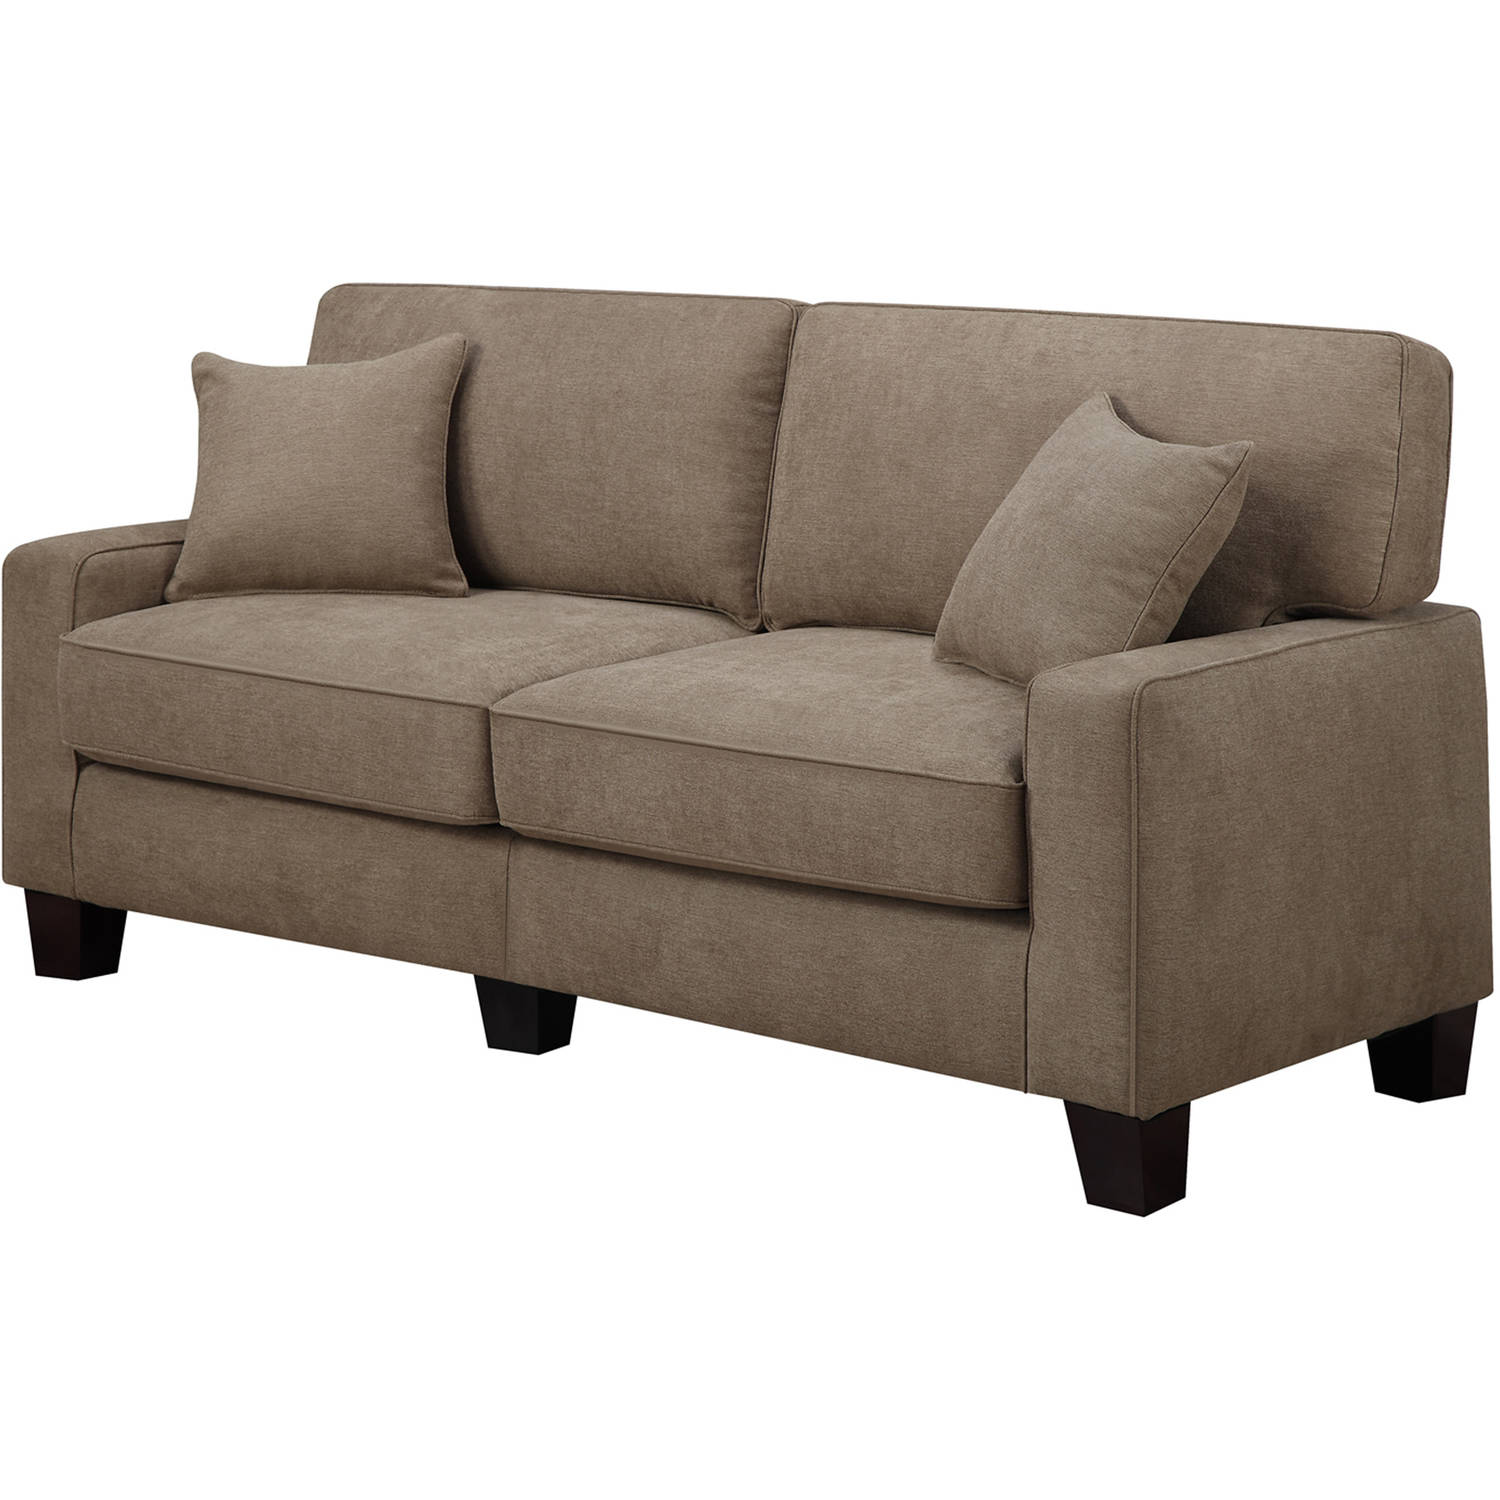 78 inch sofa bed for Sofa bed 60 inches